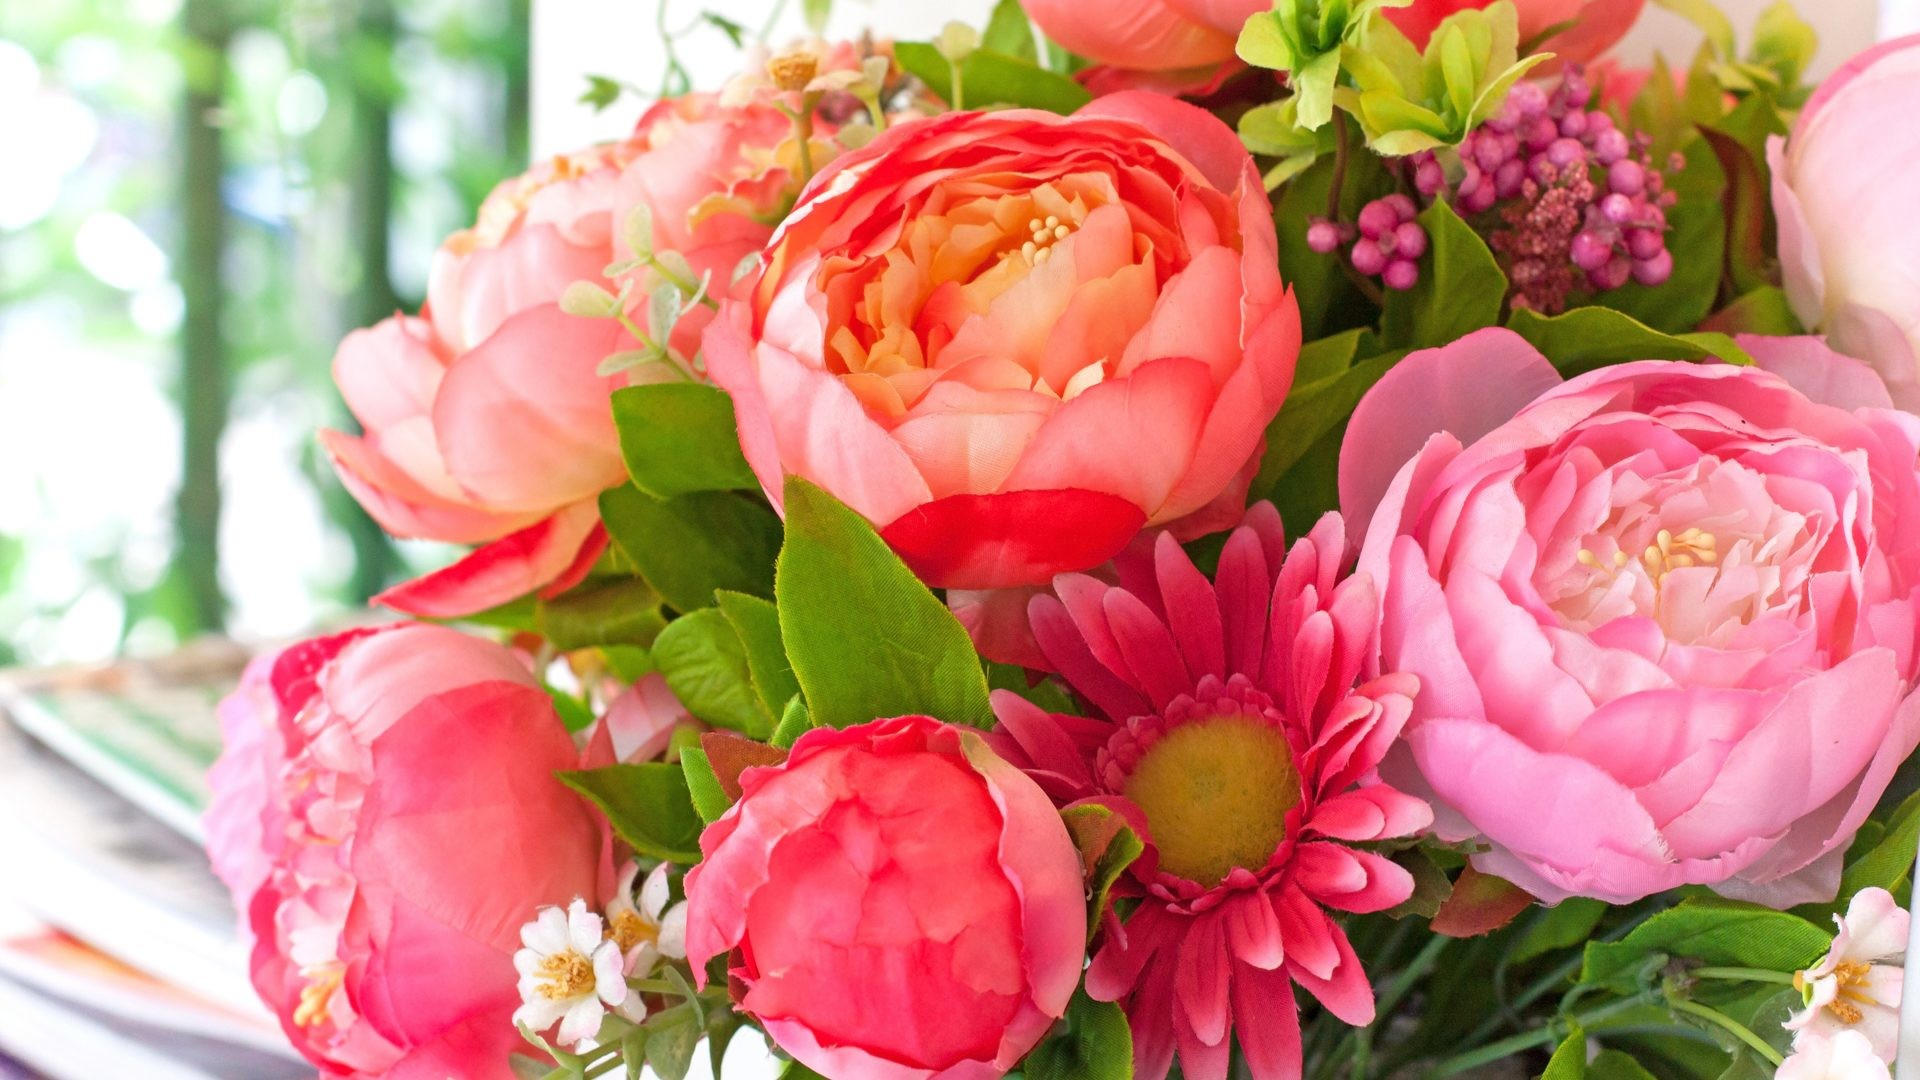 1920x1080 Peonies Tag - Bouquet Flowers Pink Peonies Flower Wallpapers Photos for HD  16:9 High